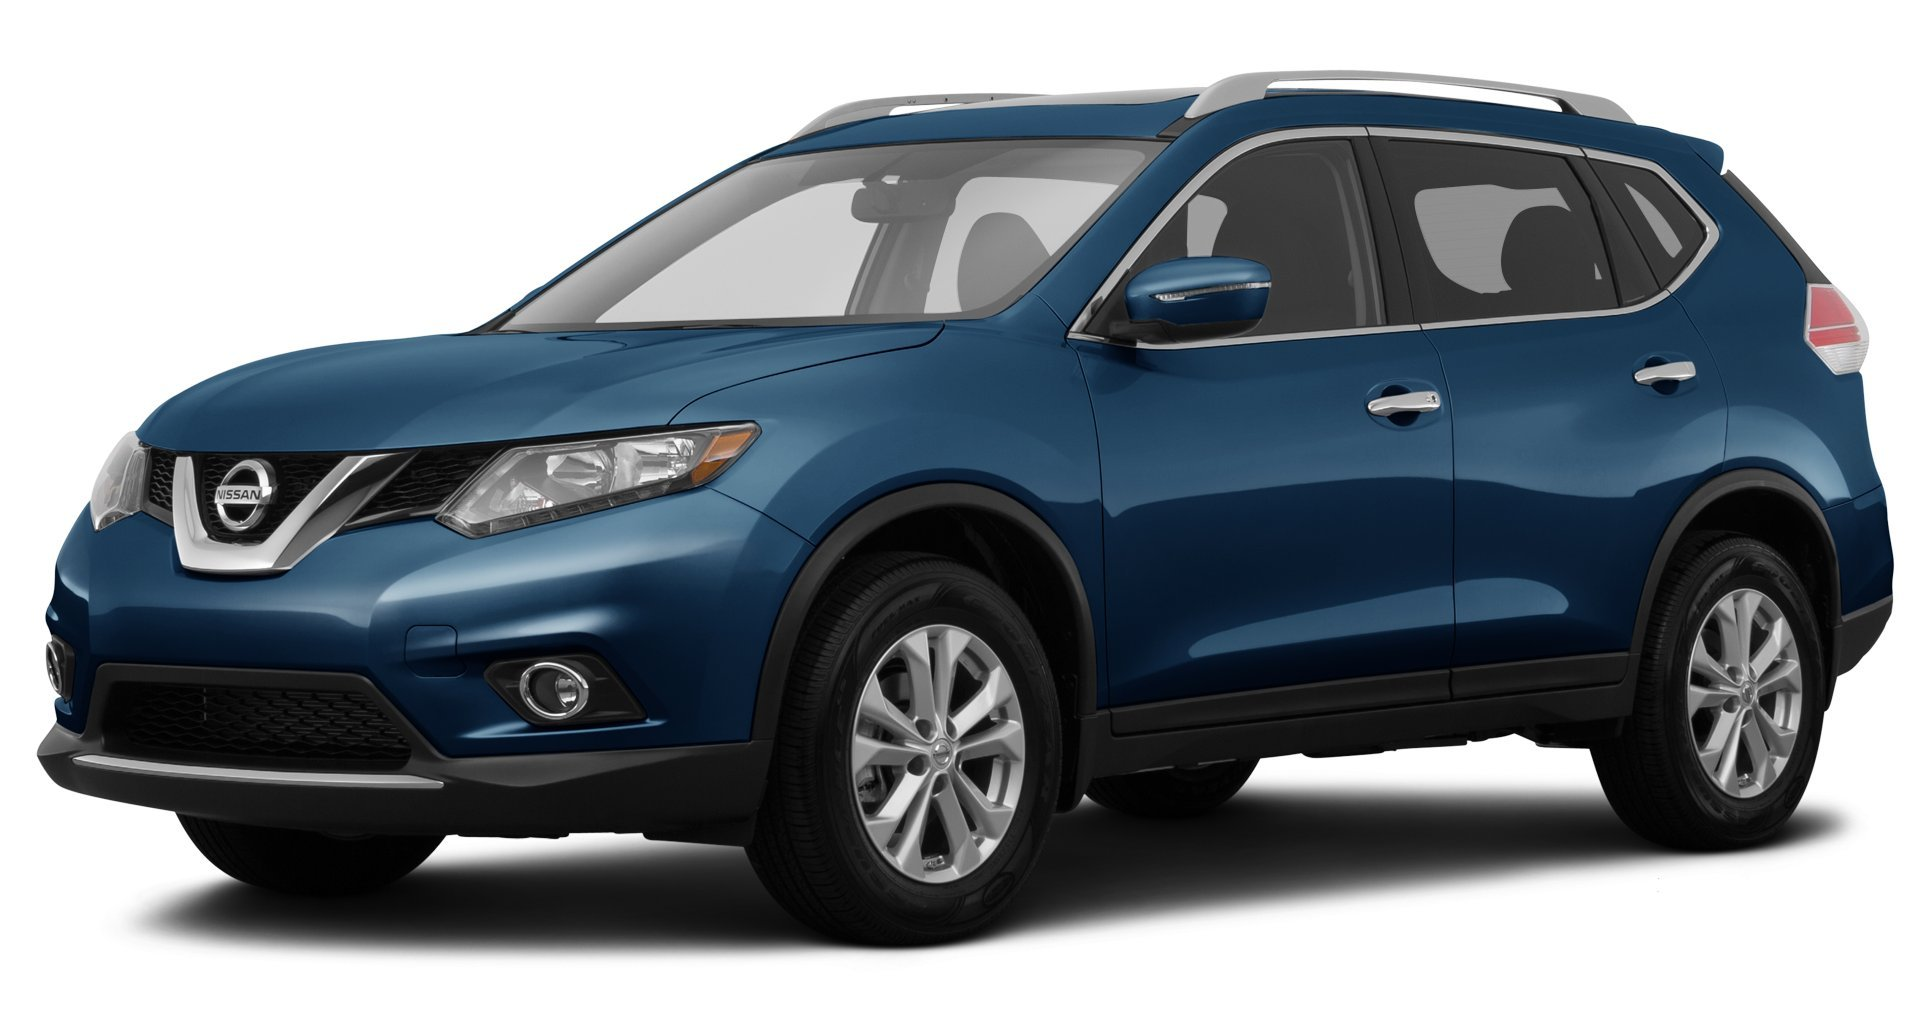 2015 buick encore reviews images and specs vehicles. Black Bedroom Furniture Sets. Home Design Ideas